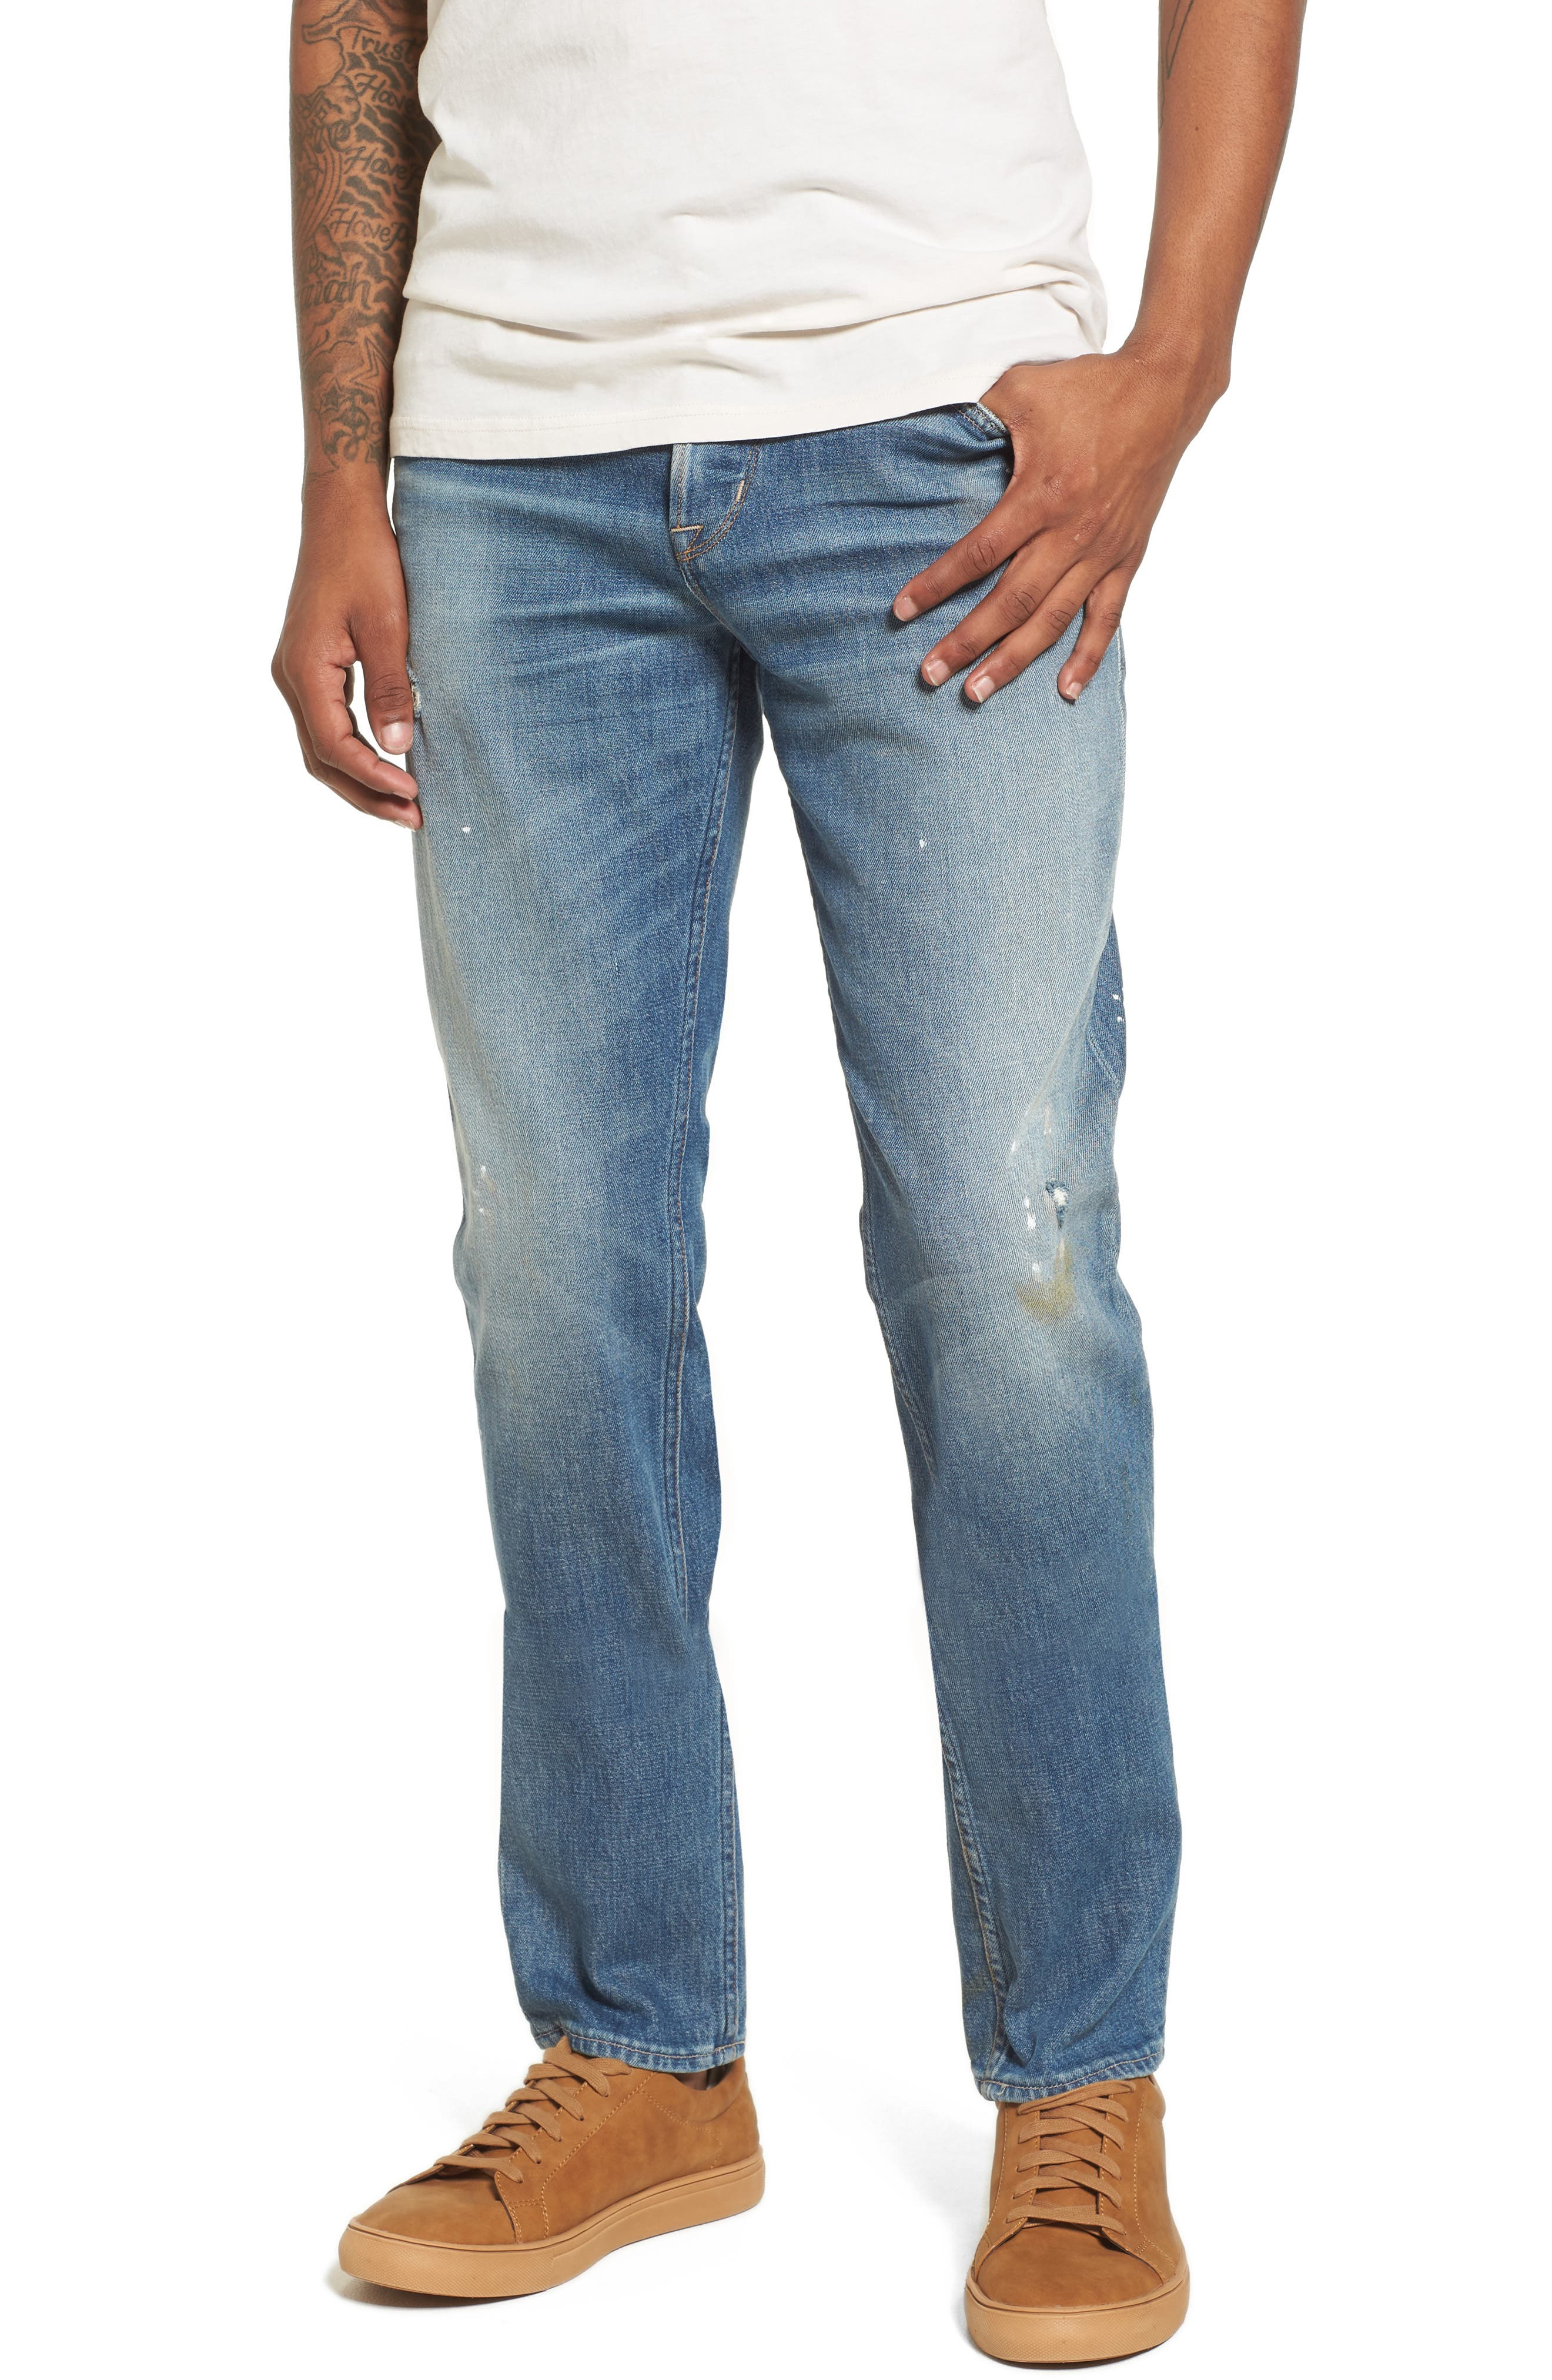 Axl Skinny Fit Jeans,                             Main thumbnail 1, color,                             Intoxicate